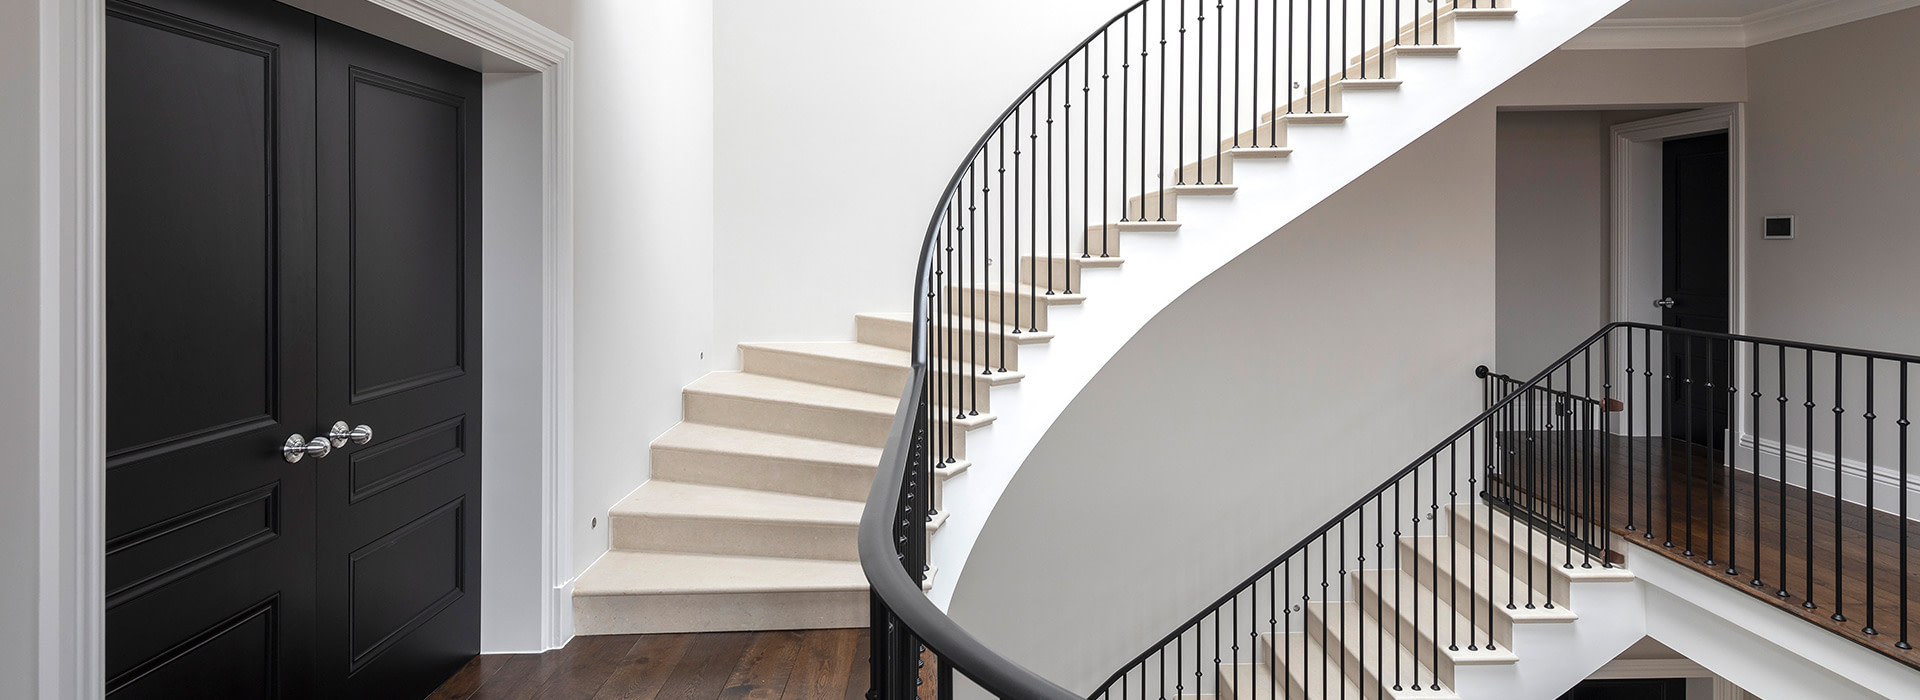 Stone staircase with wrought iron balustrade